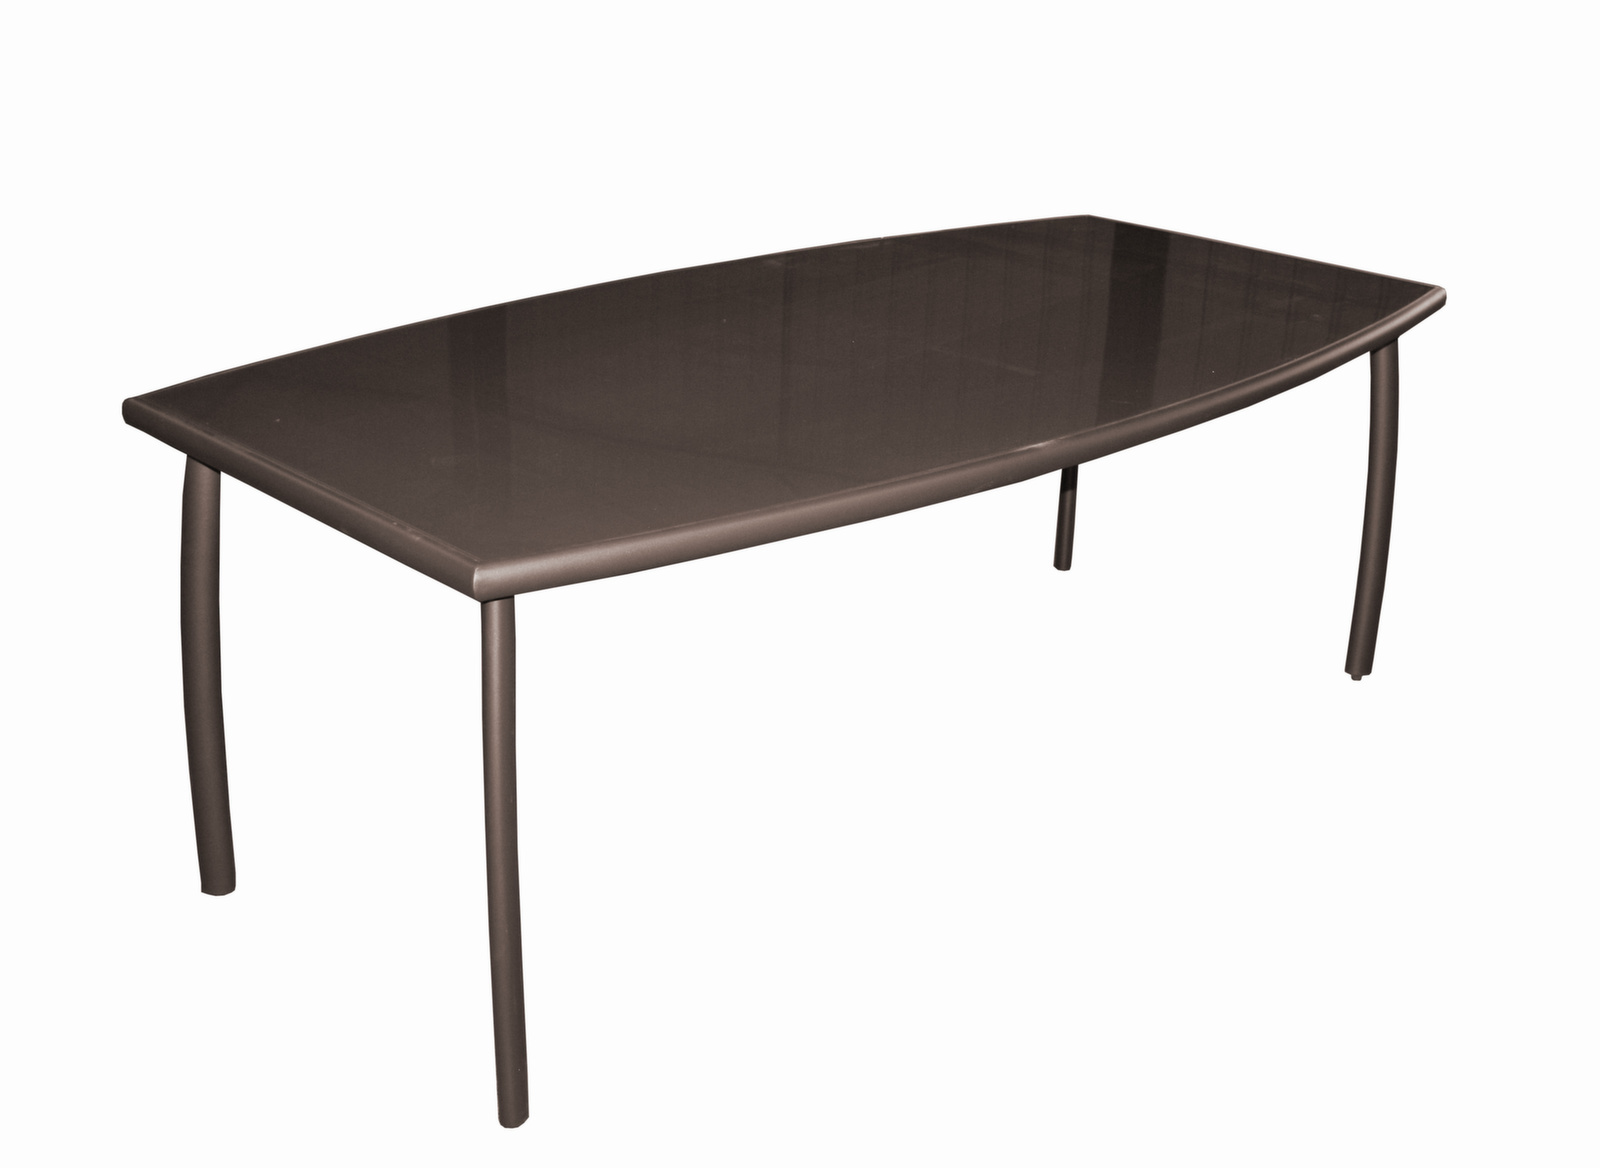 cote table vente en ligne maison design